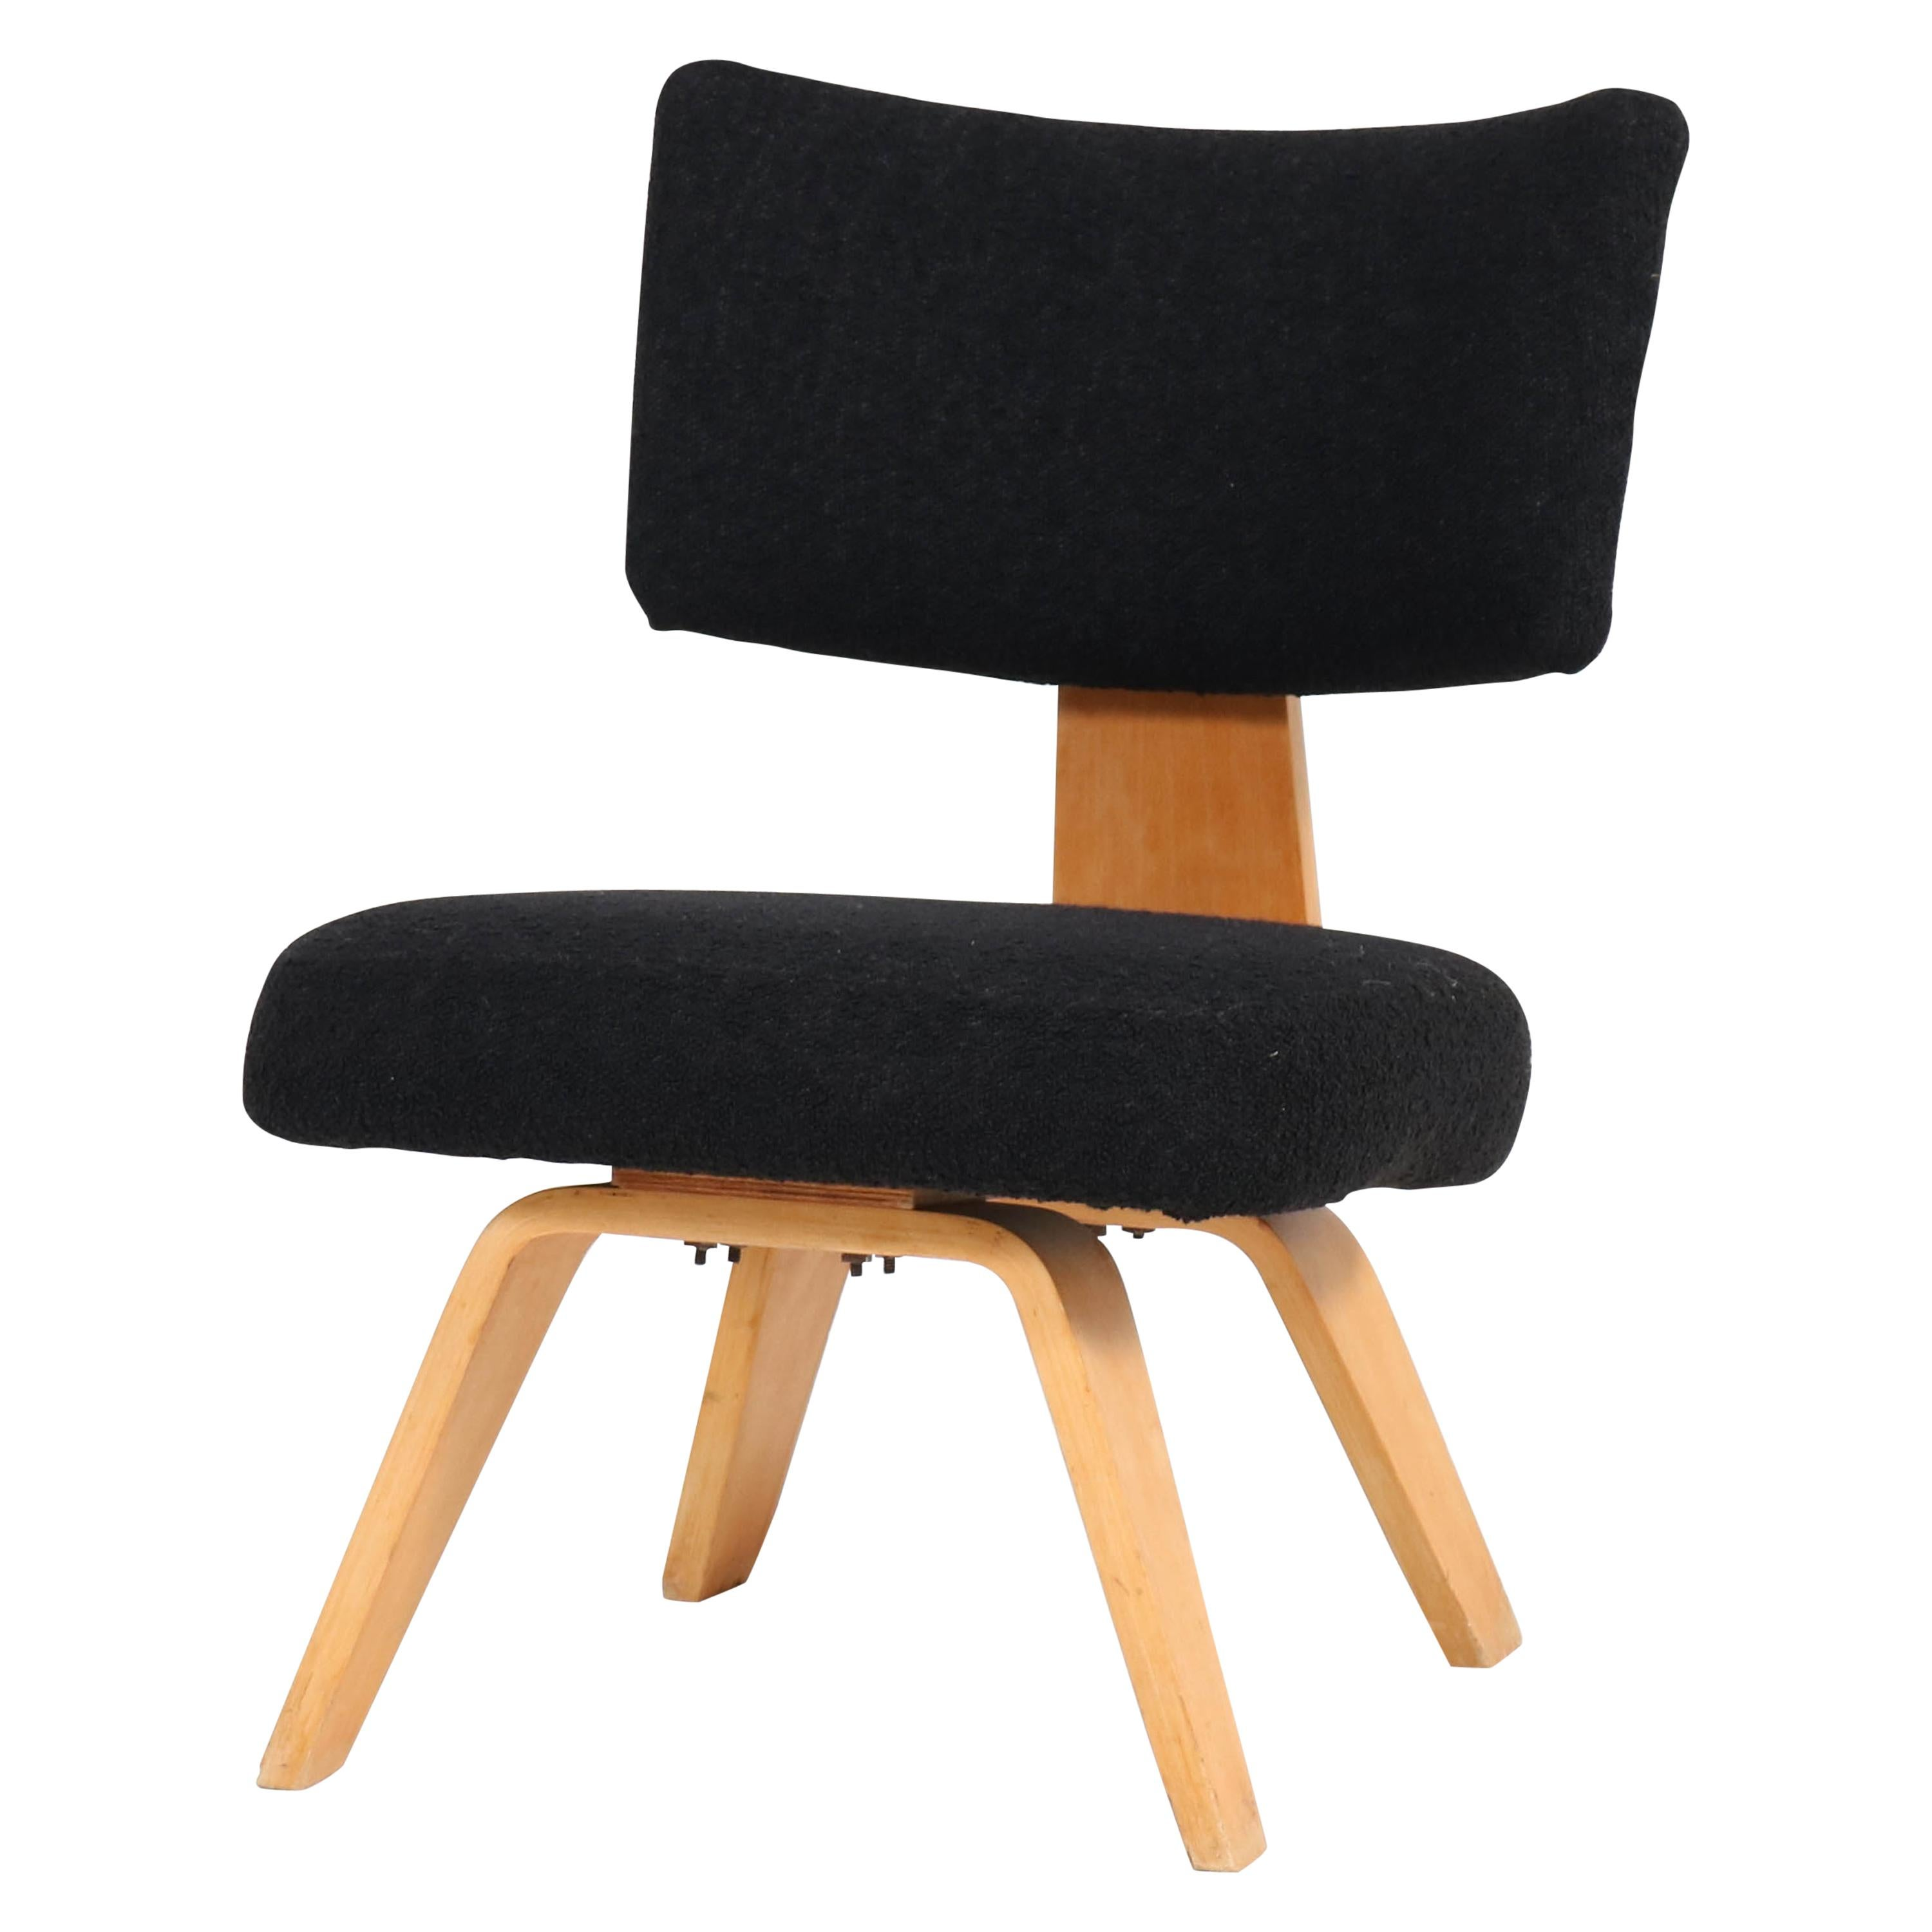 Mid-Century Modern Plywood Easy Chair by Cor Alons for Den Boer Gouda, 1948